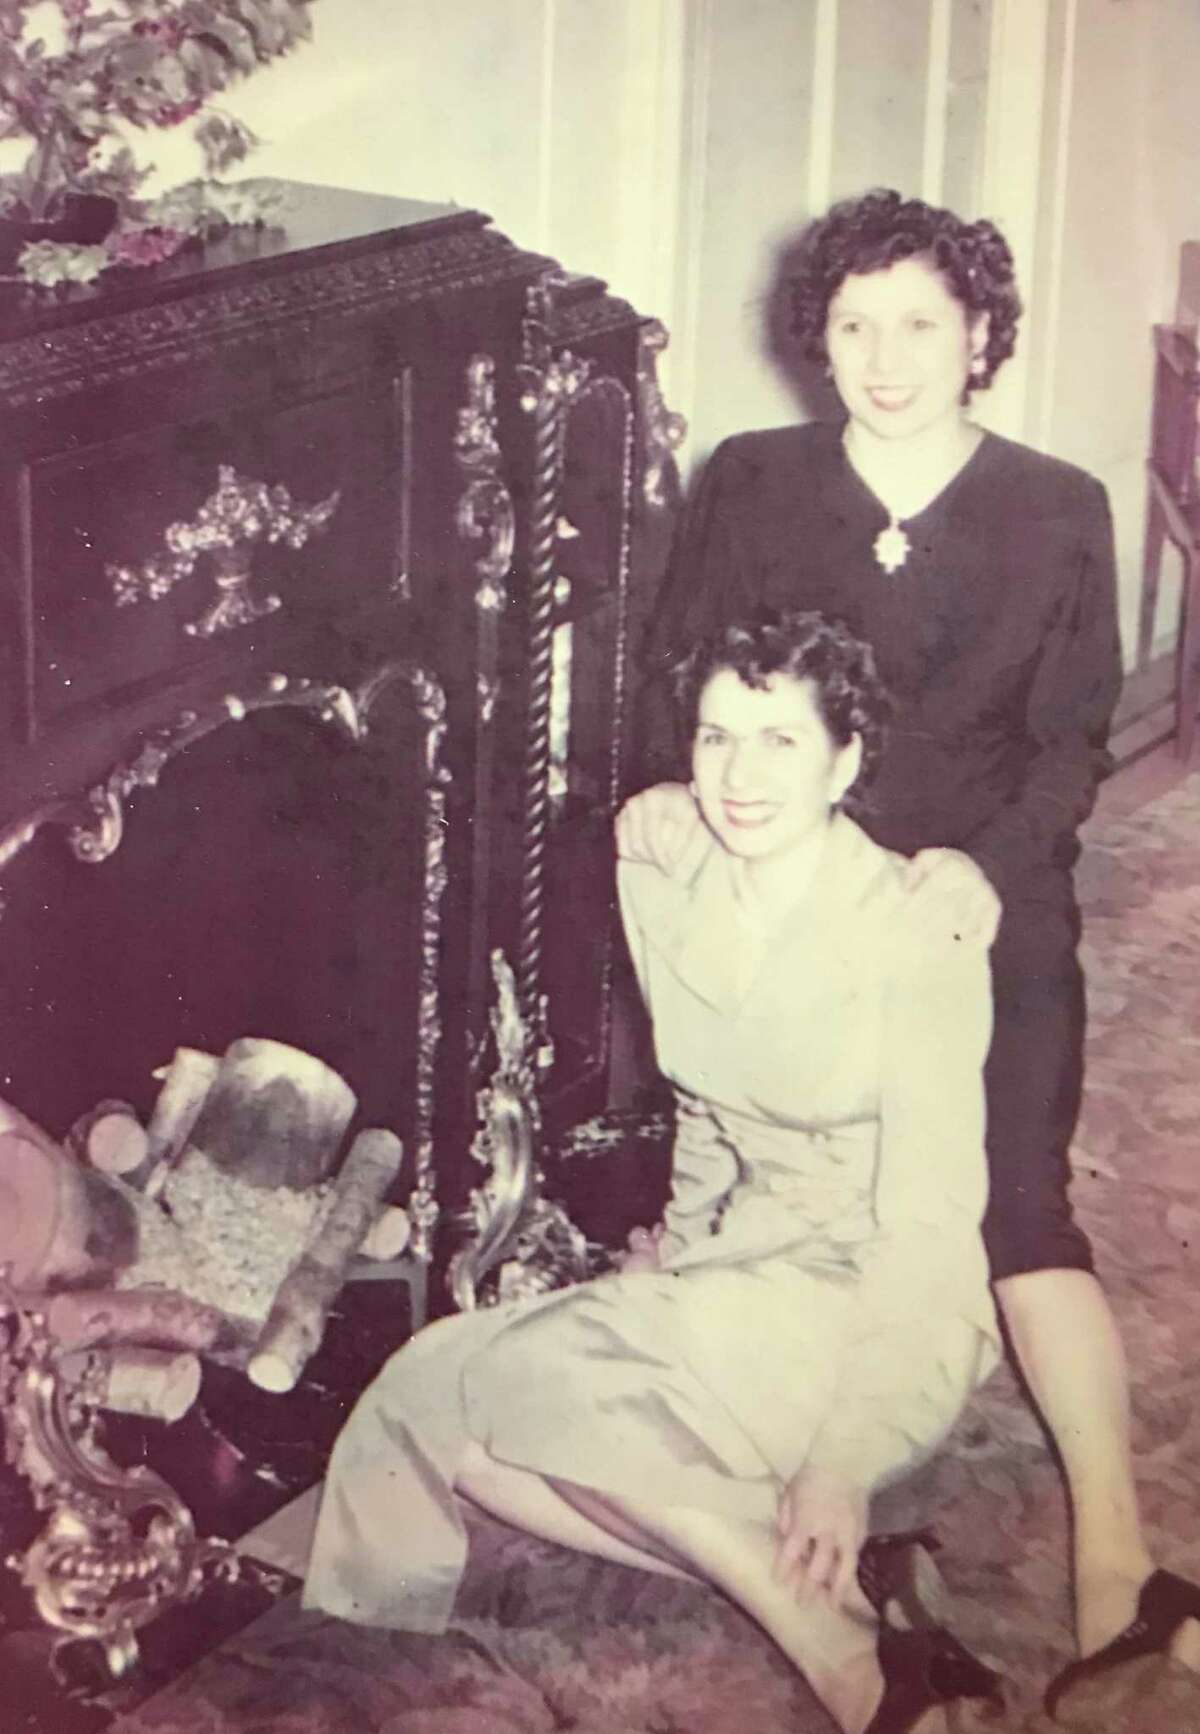 Phyllis Antonetz, seated, poses in an undated family photo with her sister, Mary. Phyllis Antonetz died April 17, 2020, of complications of the novel coronavirus.